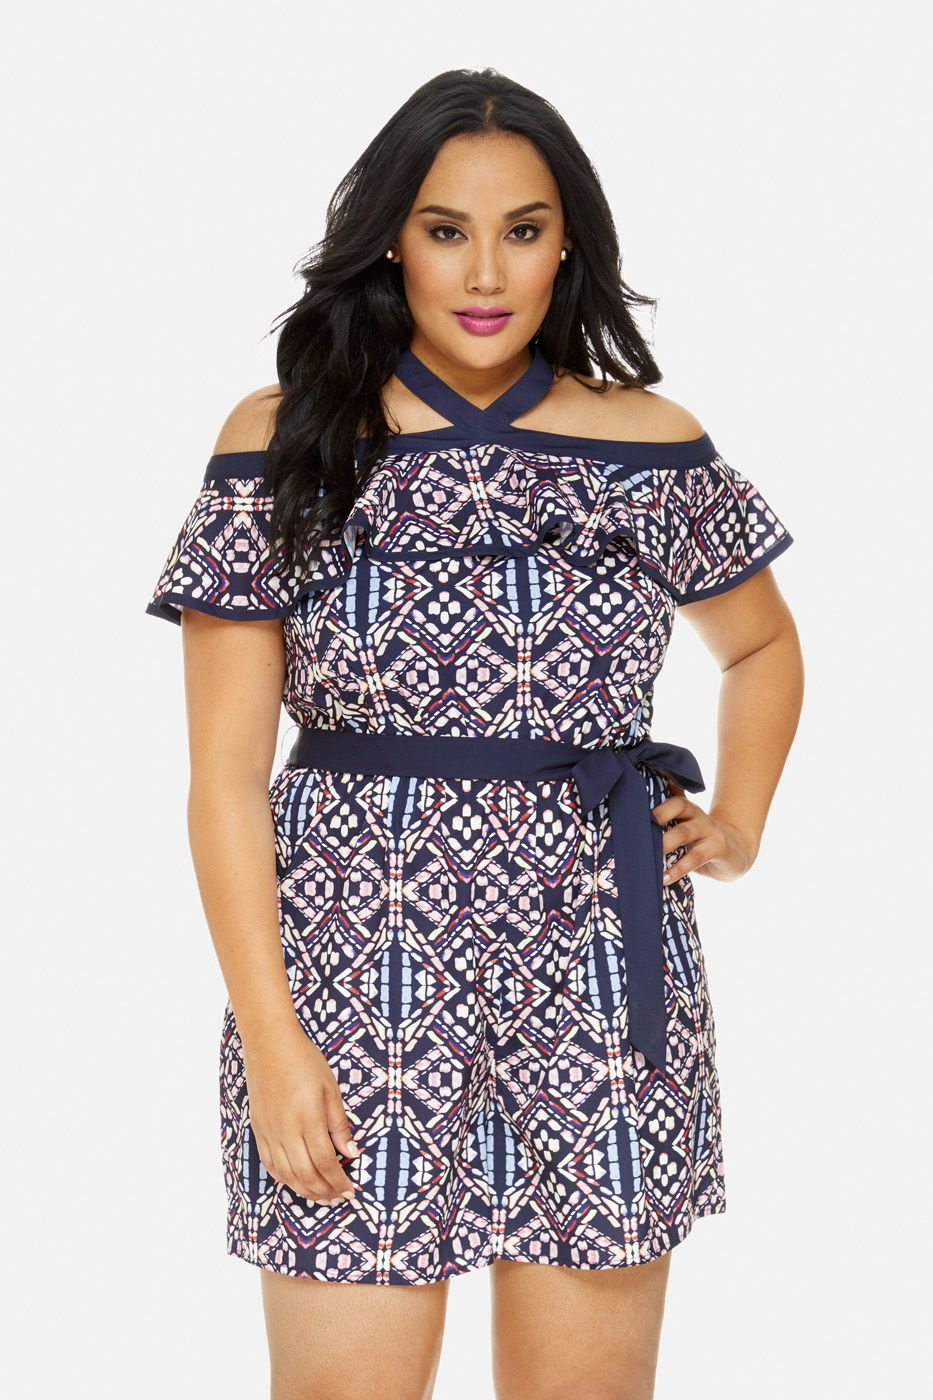 Plus Size Christina Stained Glass Print Romper